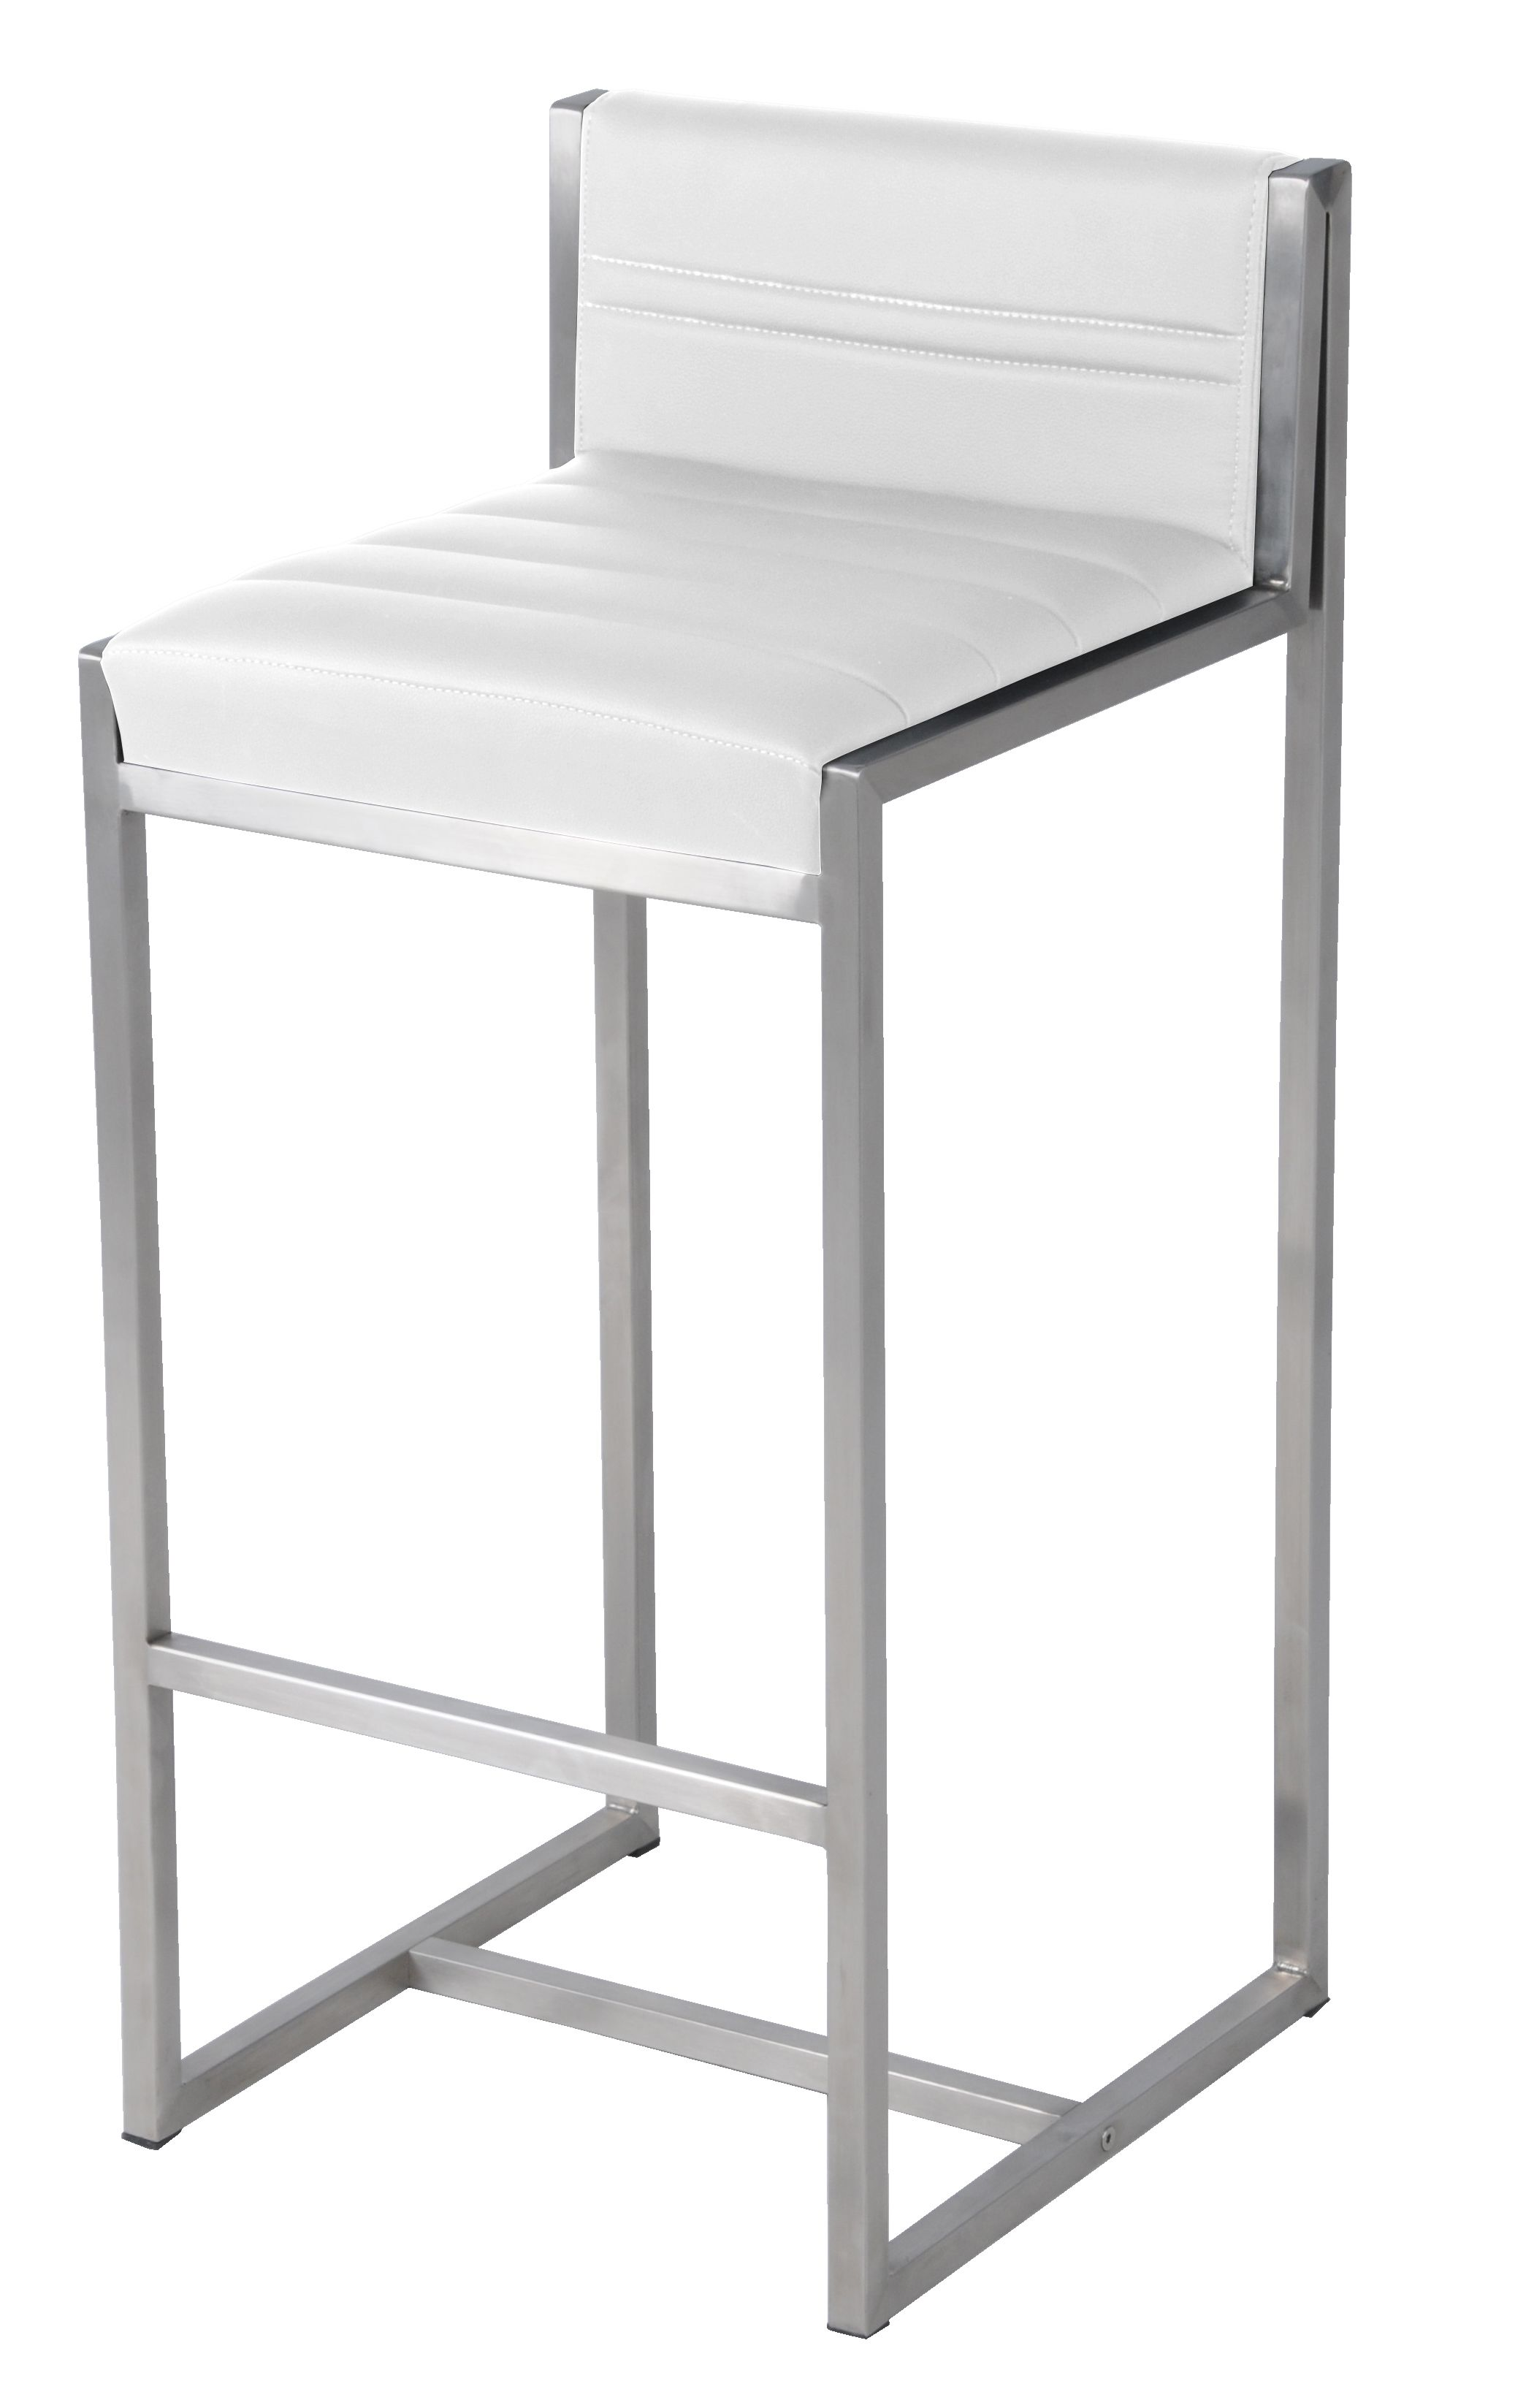 Evert Kd Bar Stool Stainless Steel Frame In White Npd